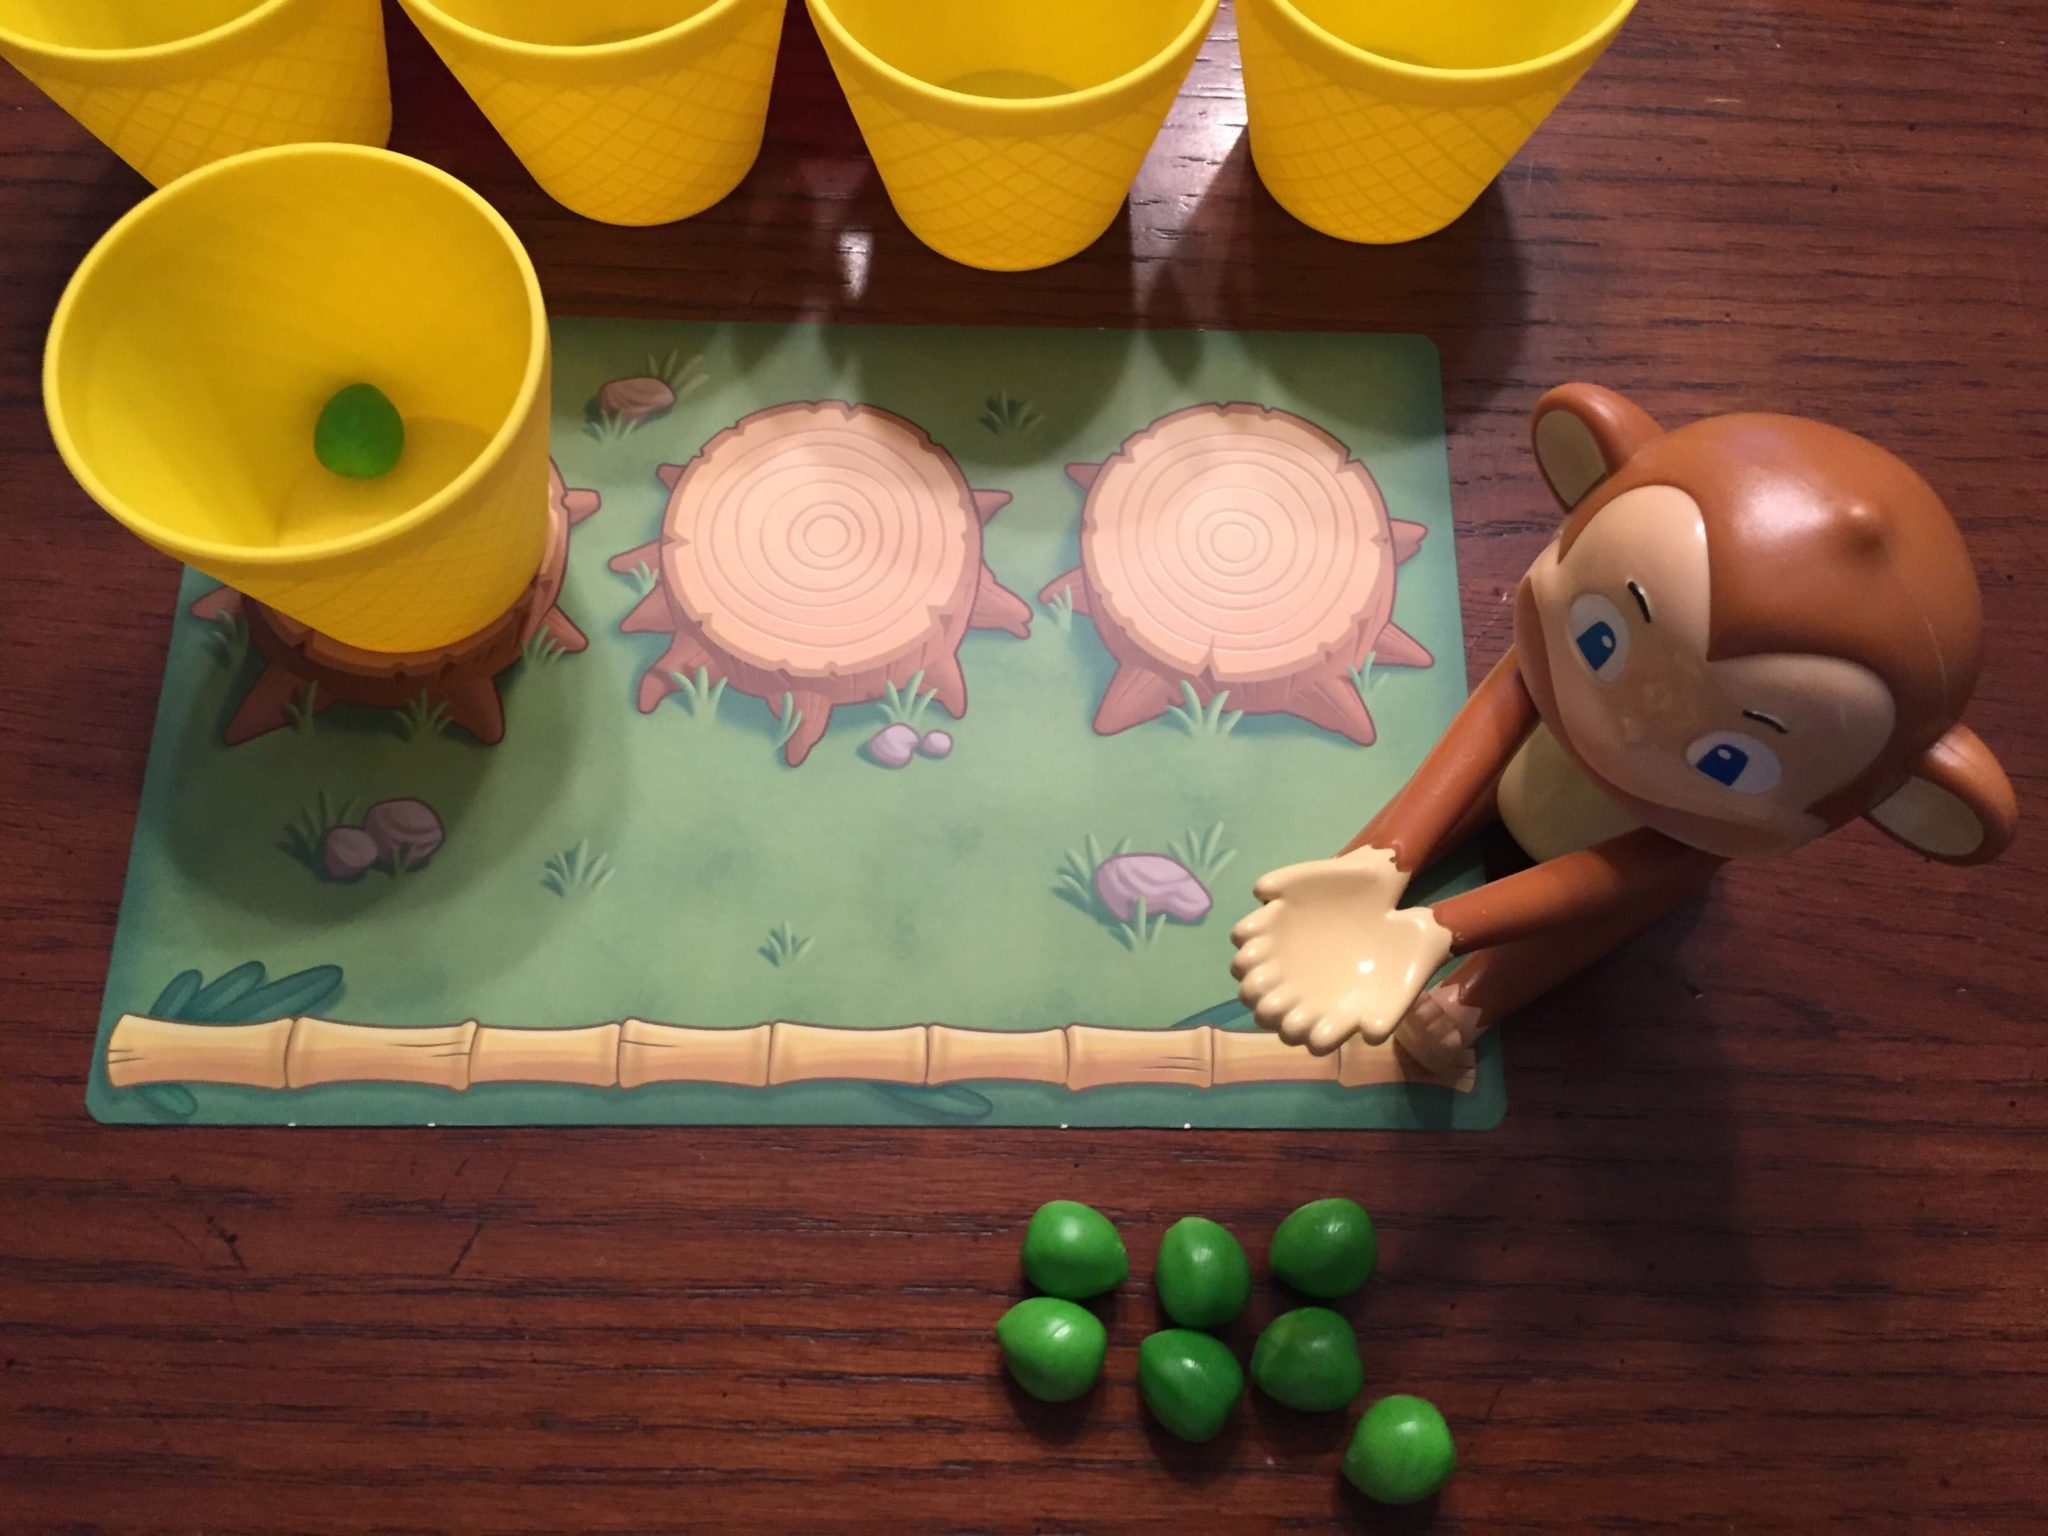 A player's play area is in the center of the photo; they have one yellow cup on the far left stump. A toy monkey and 7 green toy coconuts are in the bottom right.